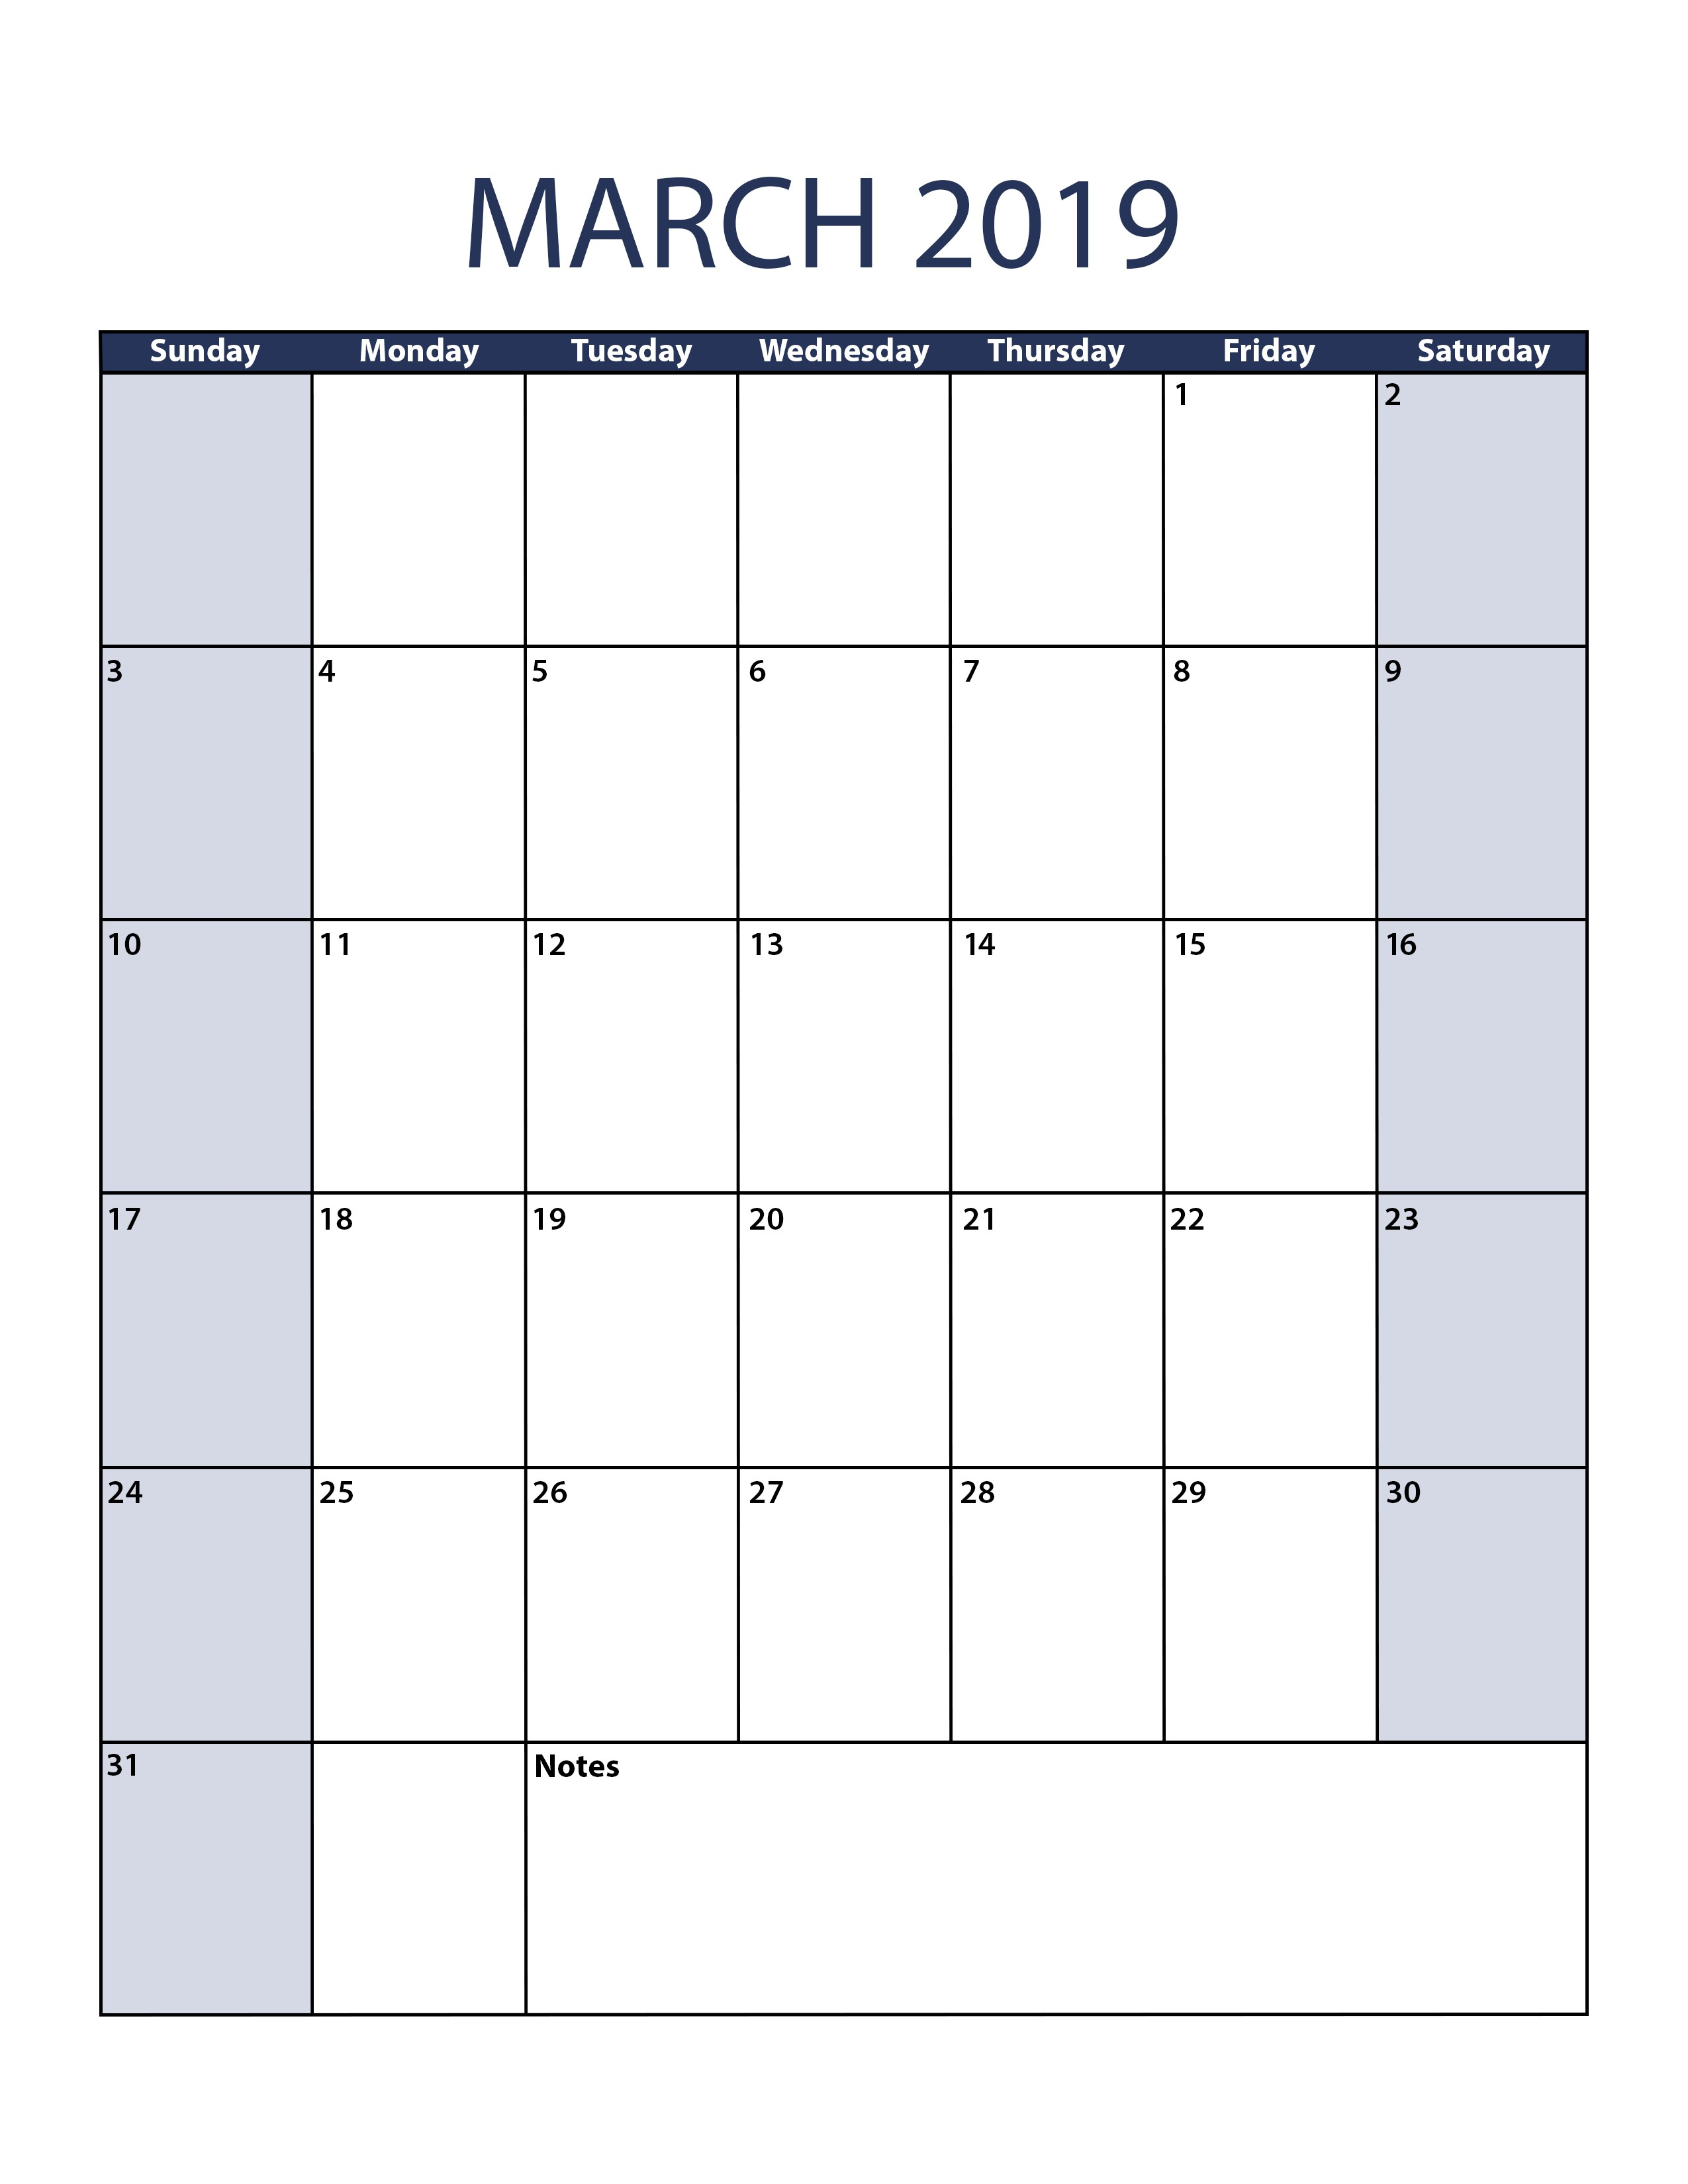 March Calendar 2019 Más Arriba-a-fecha March 2019 Calendar Template Of March Calendar 2019 Más Populares February March Calendar 2019 2018 Printable Calendar Store